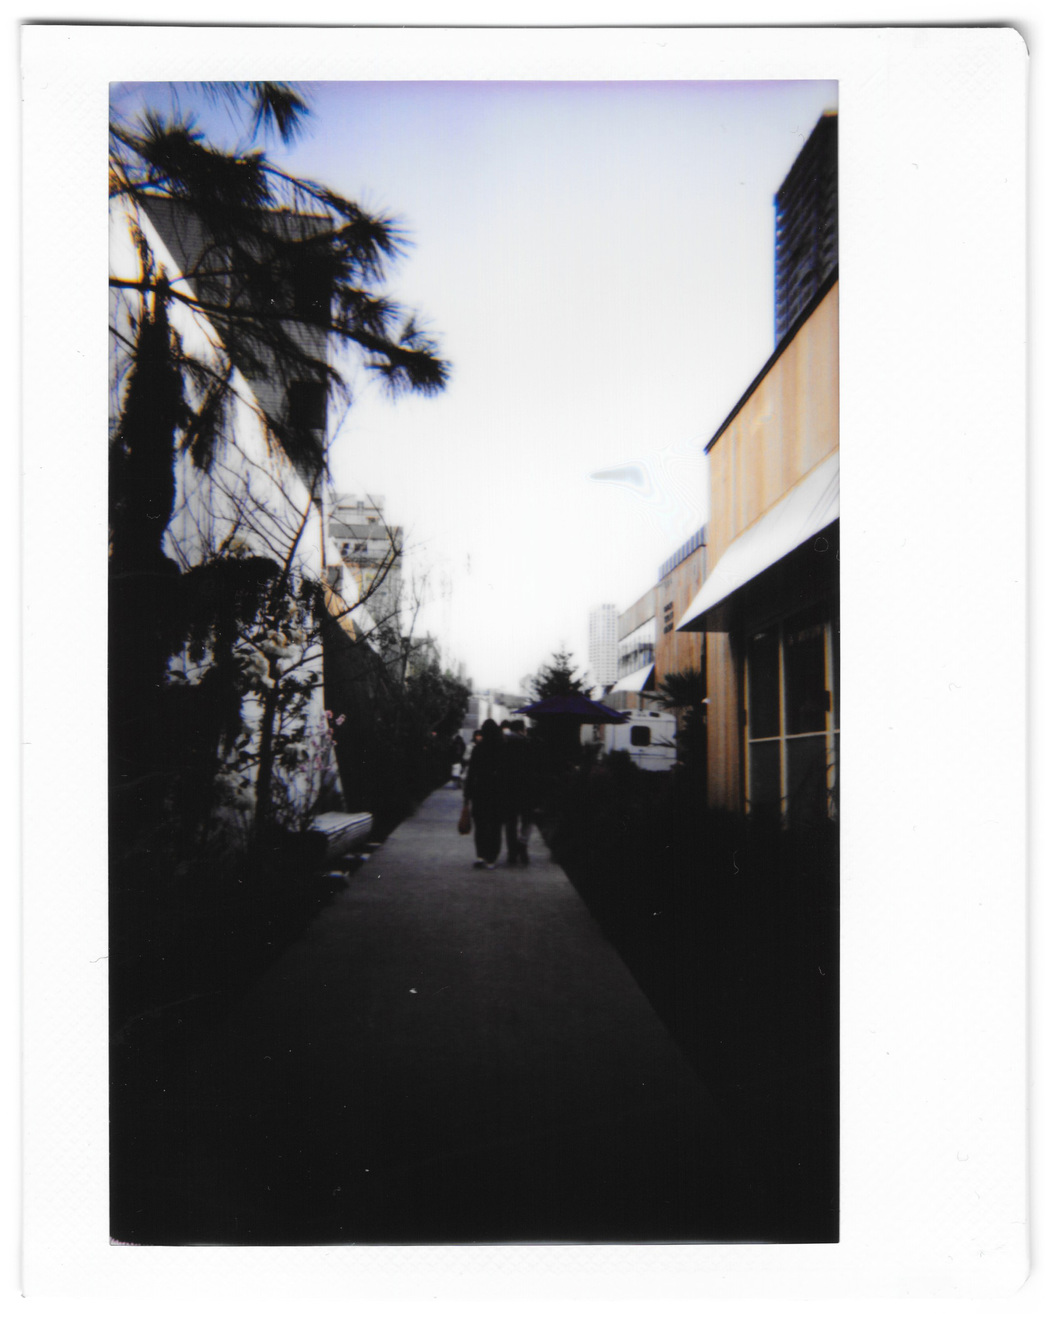 "Instant photo for Day 161 of ""A Year in an Instant"" by Nuno Coelho Santos"